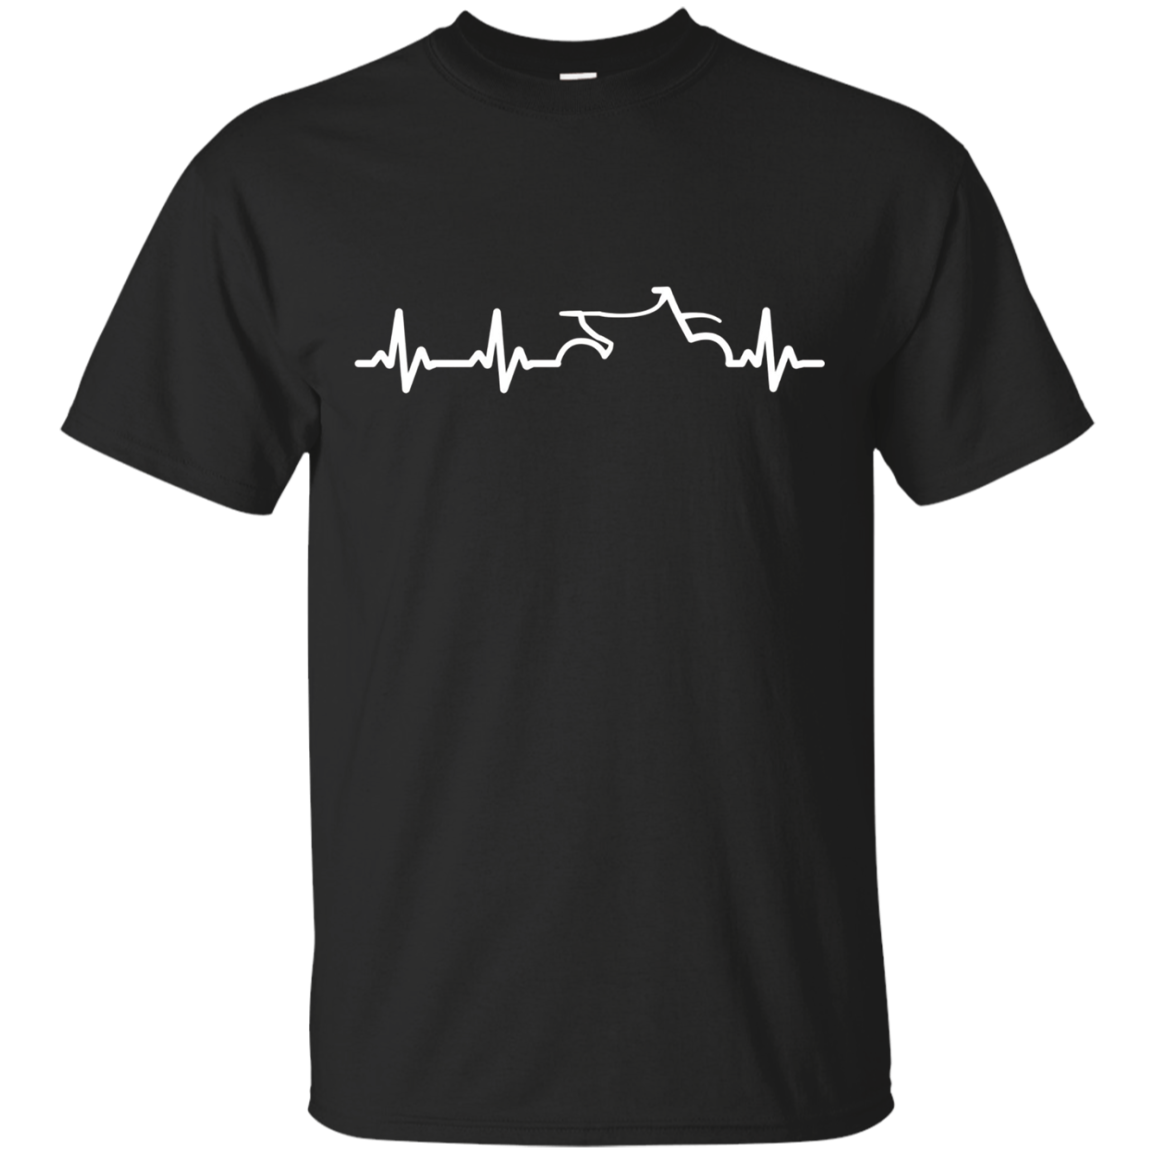 Cool Motocross T-shirts: Motocross Dirt Bike Pulse T-shirt